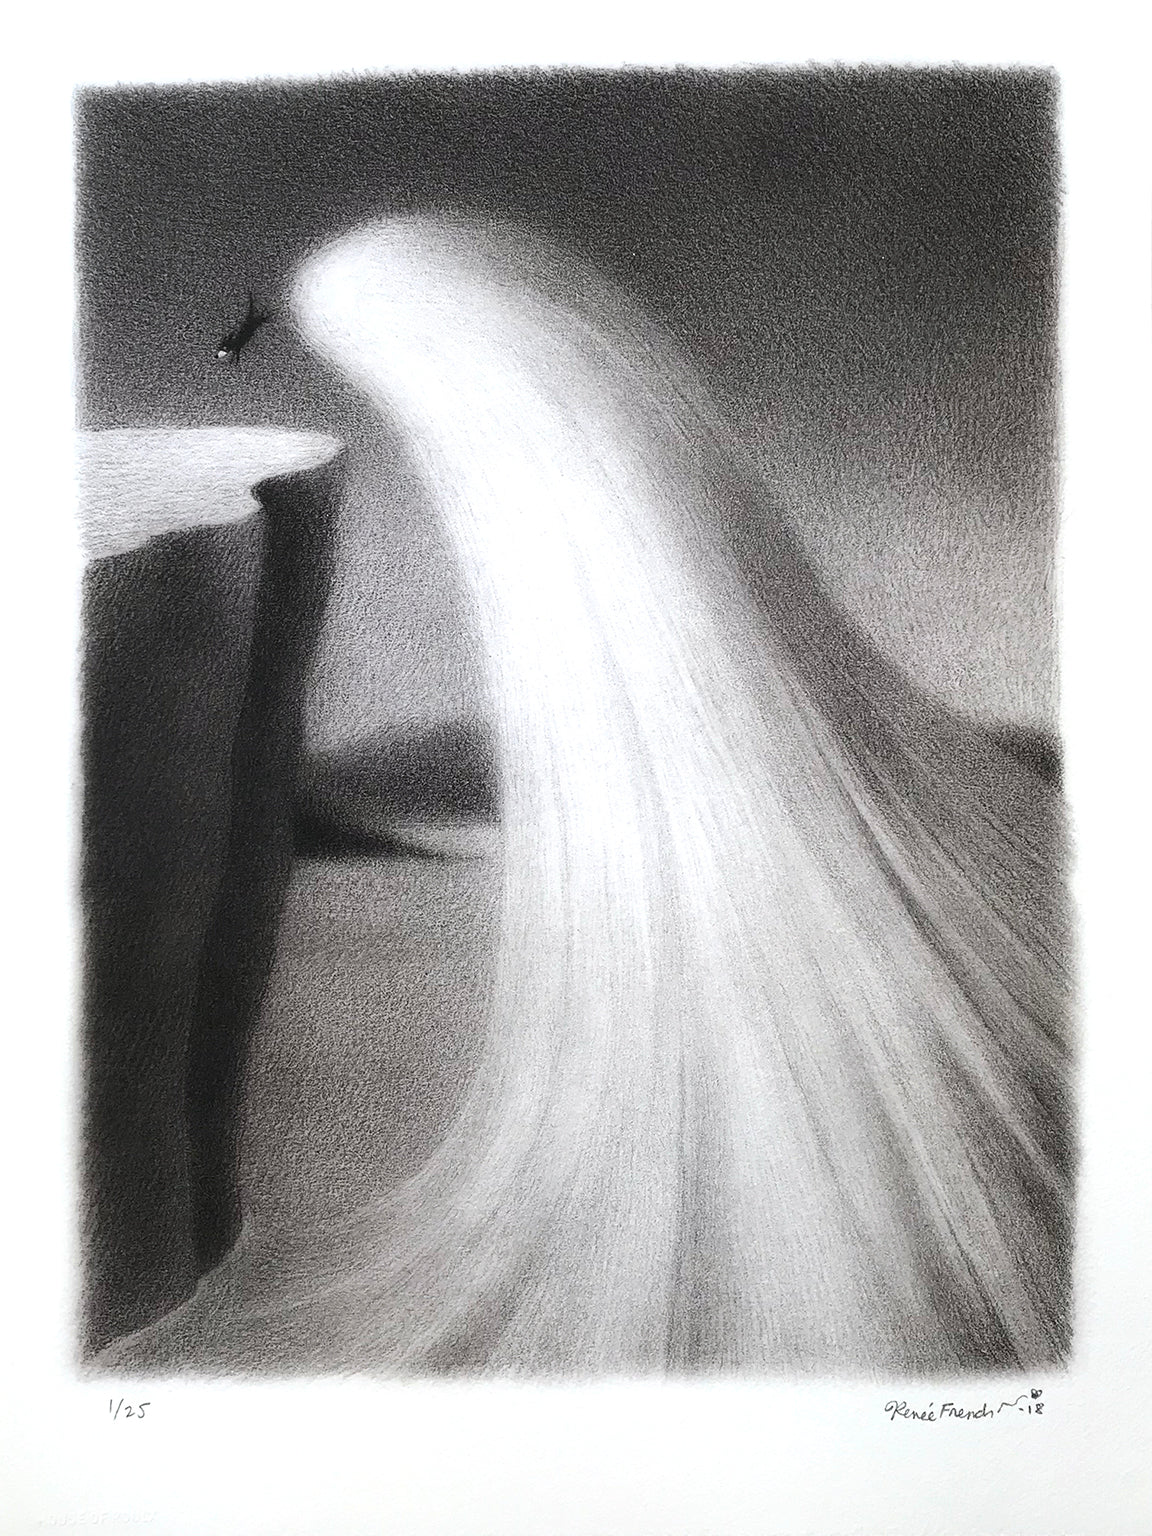 "Renee French ""Horatio's Wave"" - Archival Print, Edition of 25 - 12 x 16"""